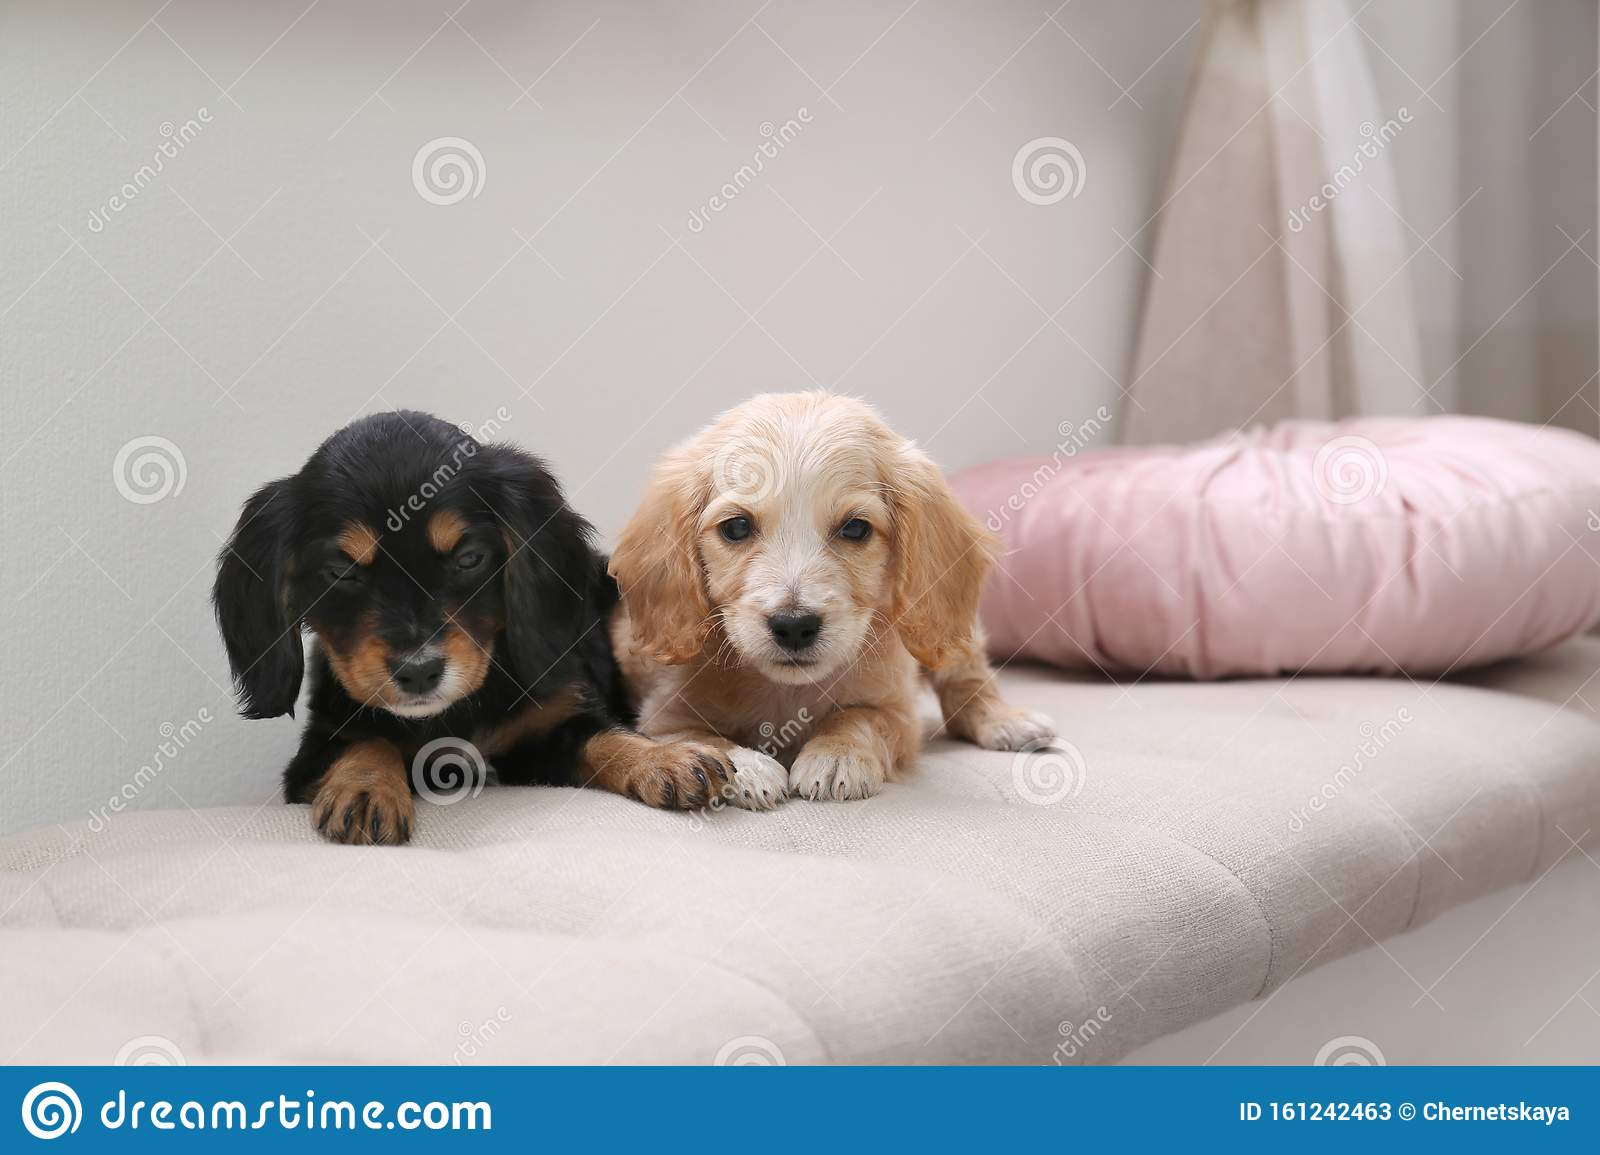 Cute English Cocker Spaniel Puppies On Sofa Stock Image Image Of Friendly Carnivore 161242463